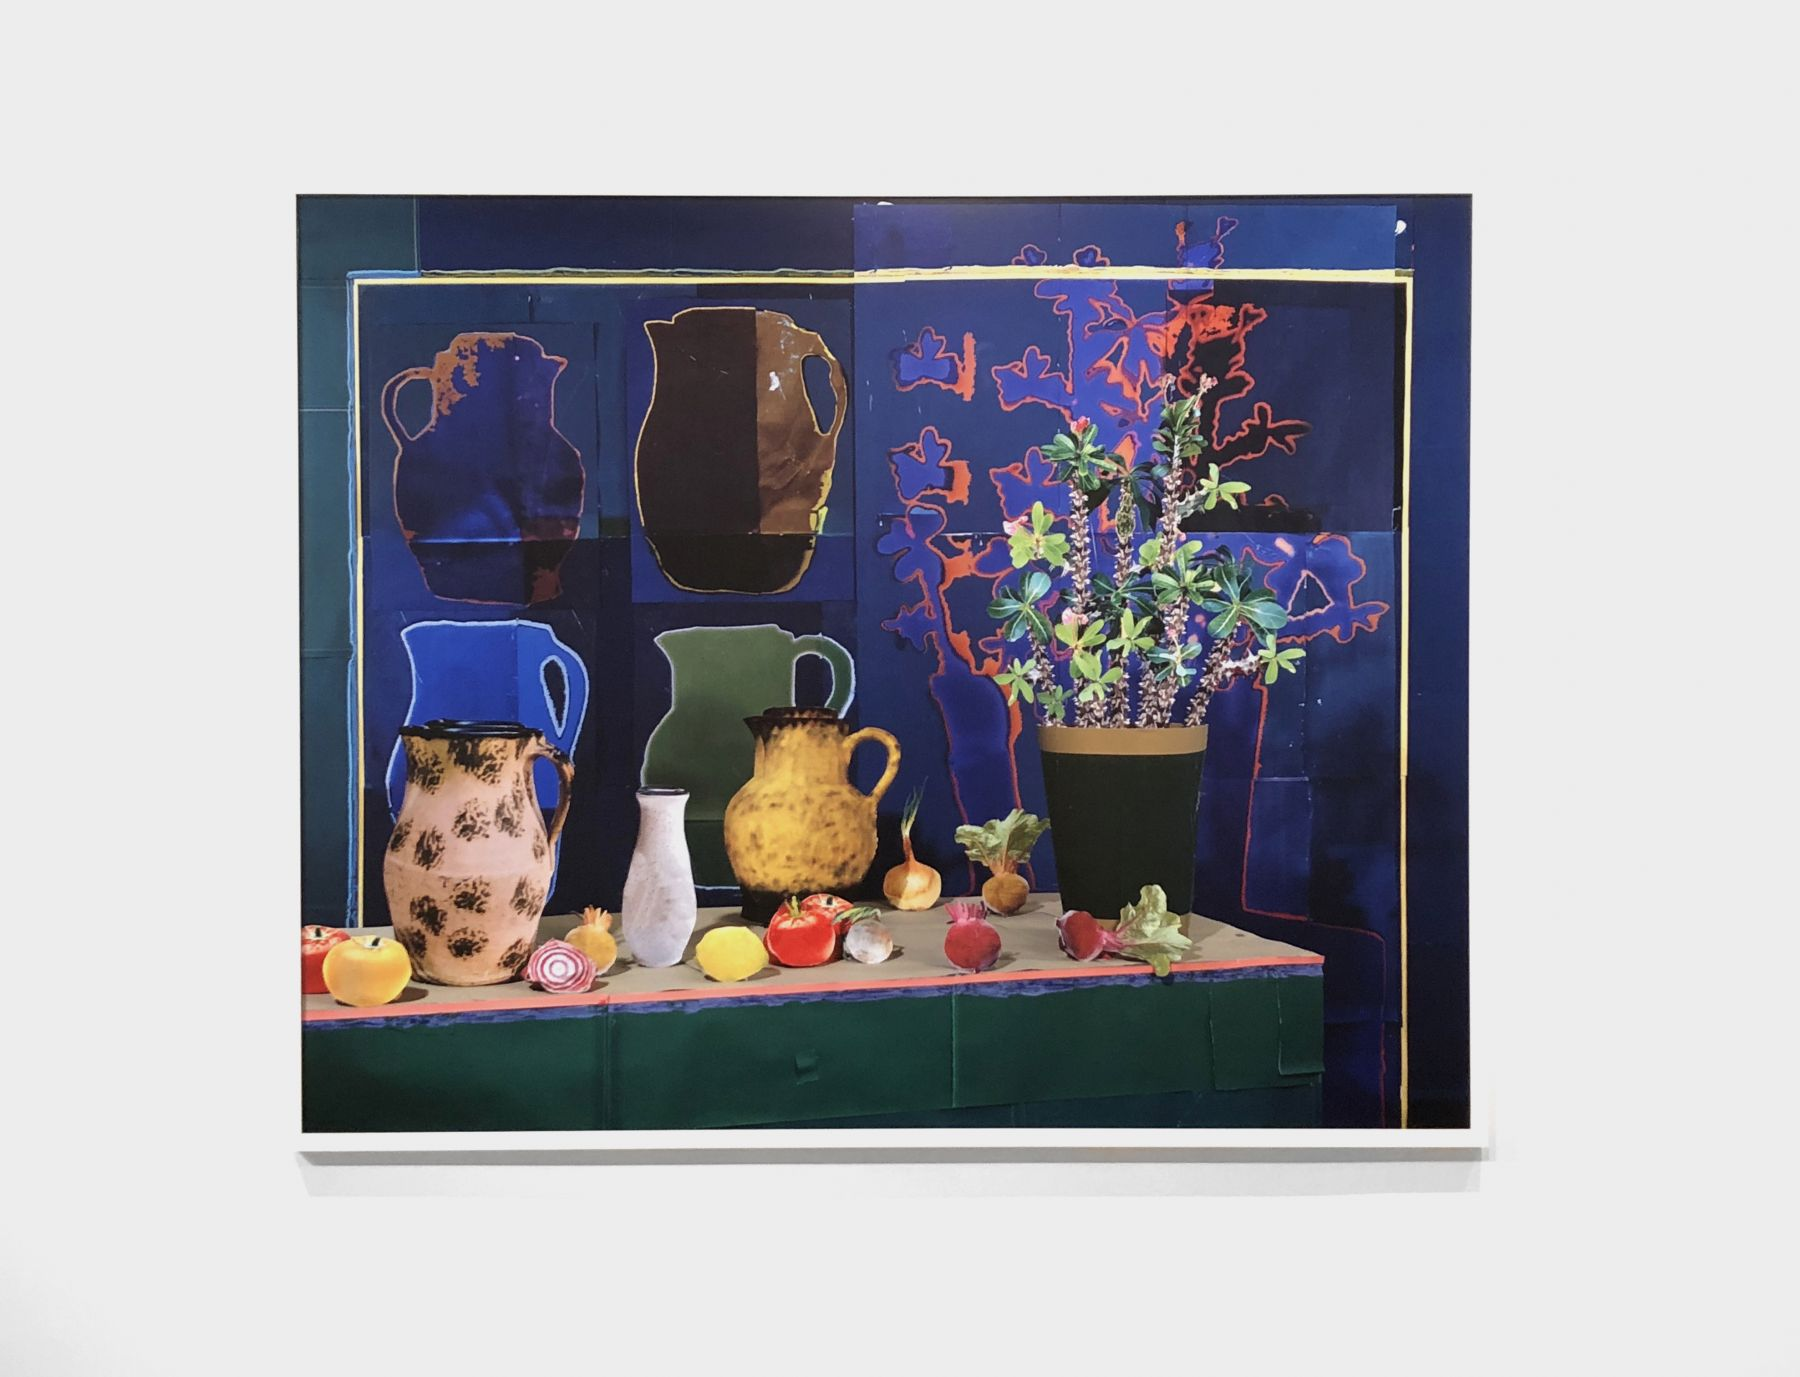 Daniel Gordon, Still Life with Vase, Shadows, and Vegetables. 2018